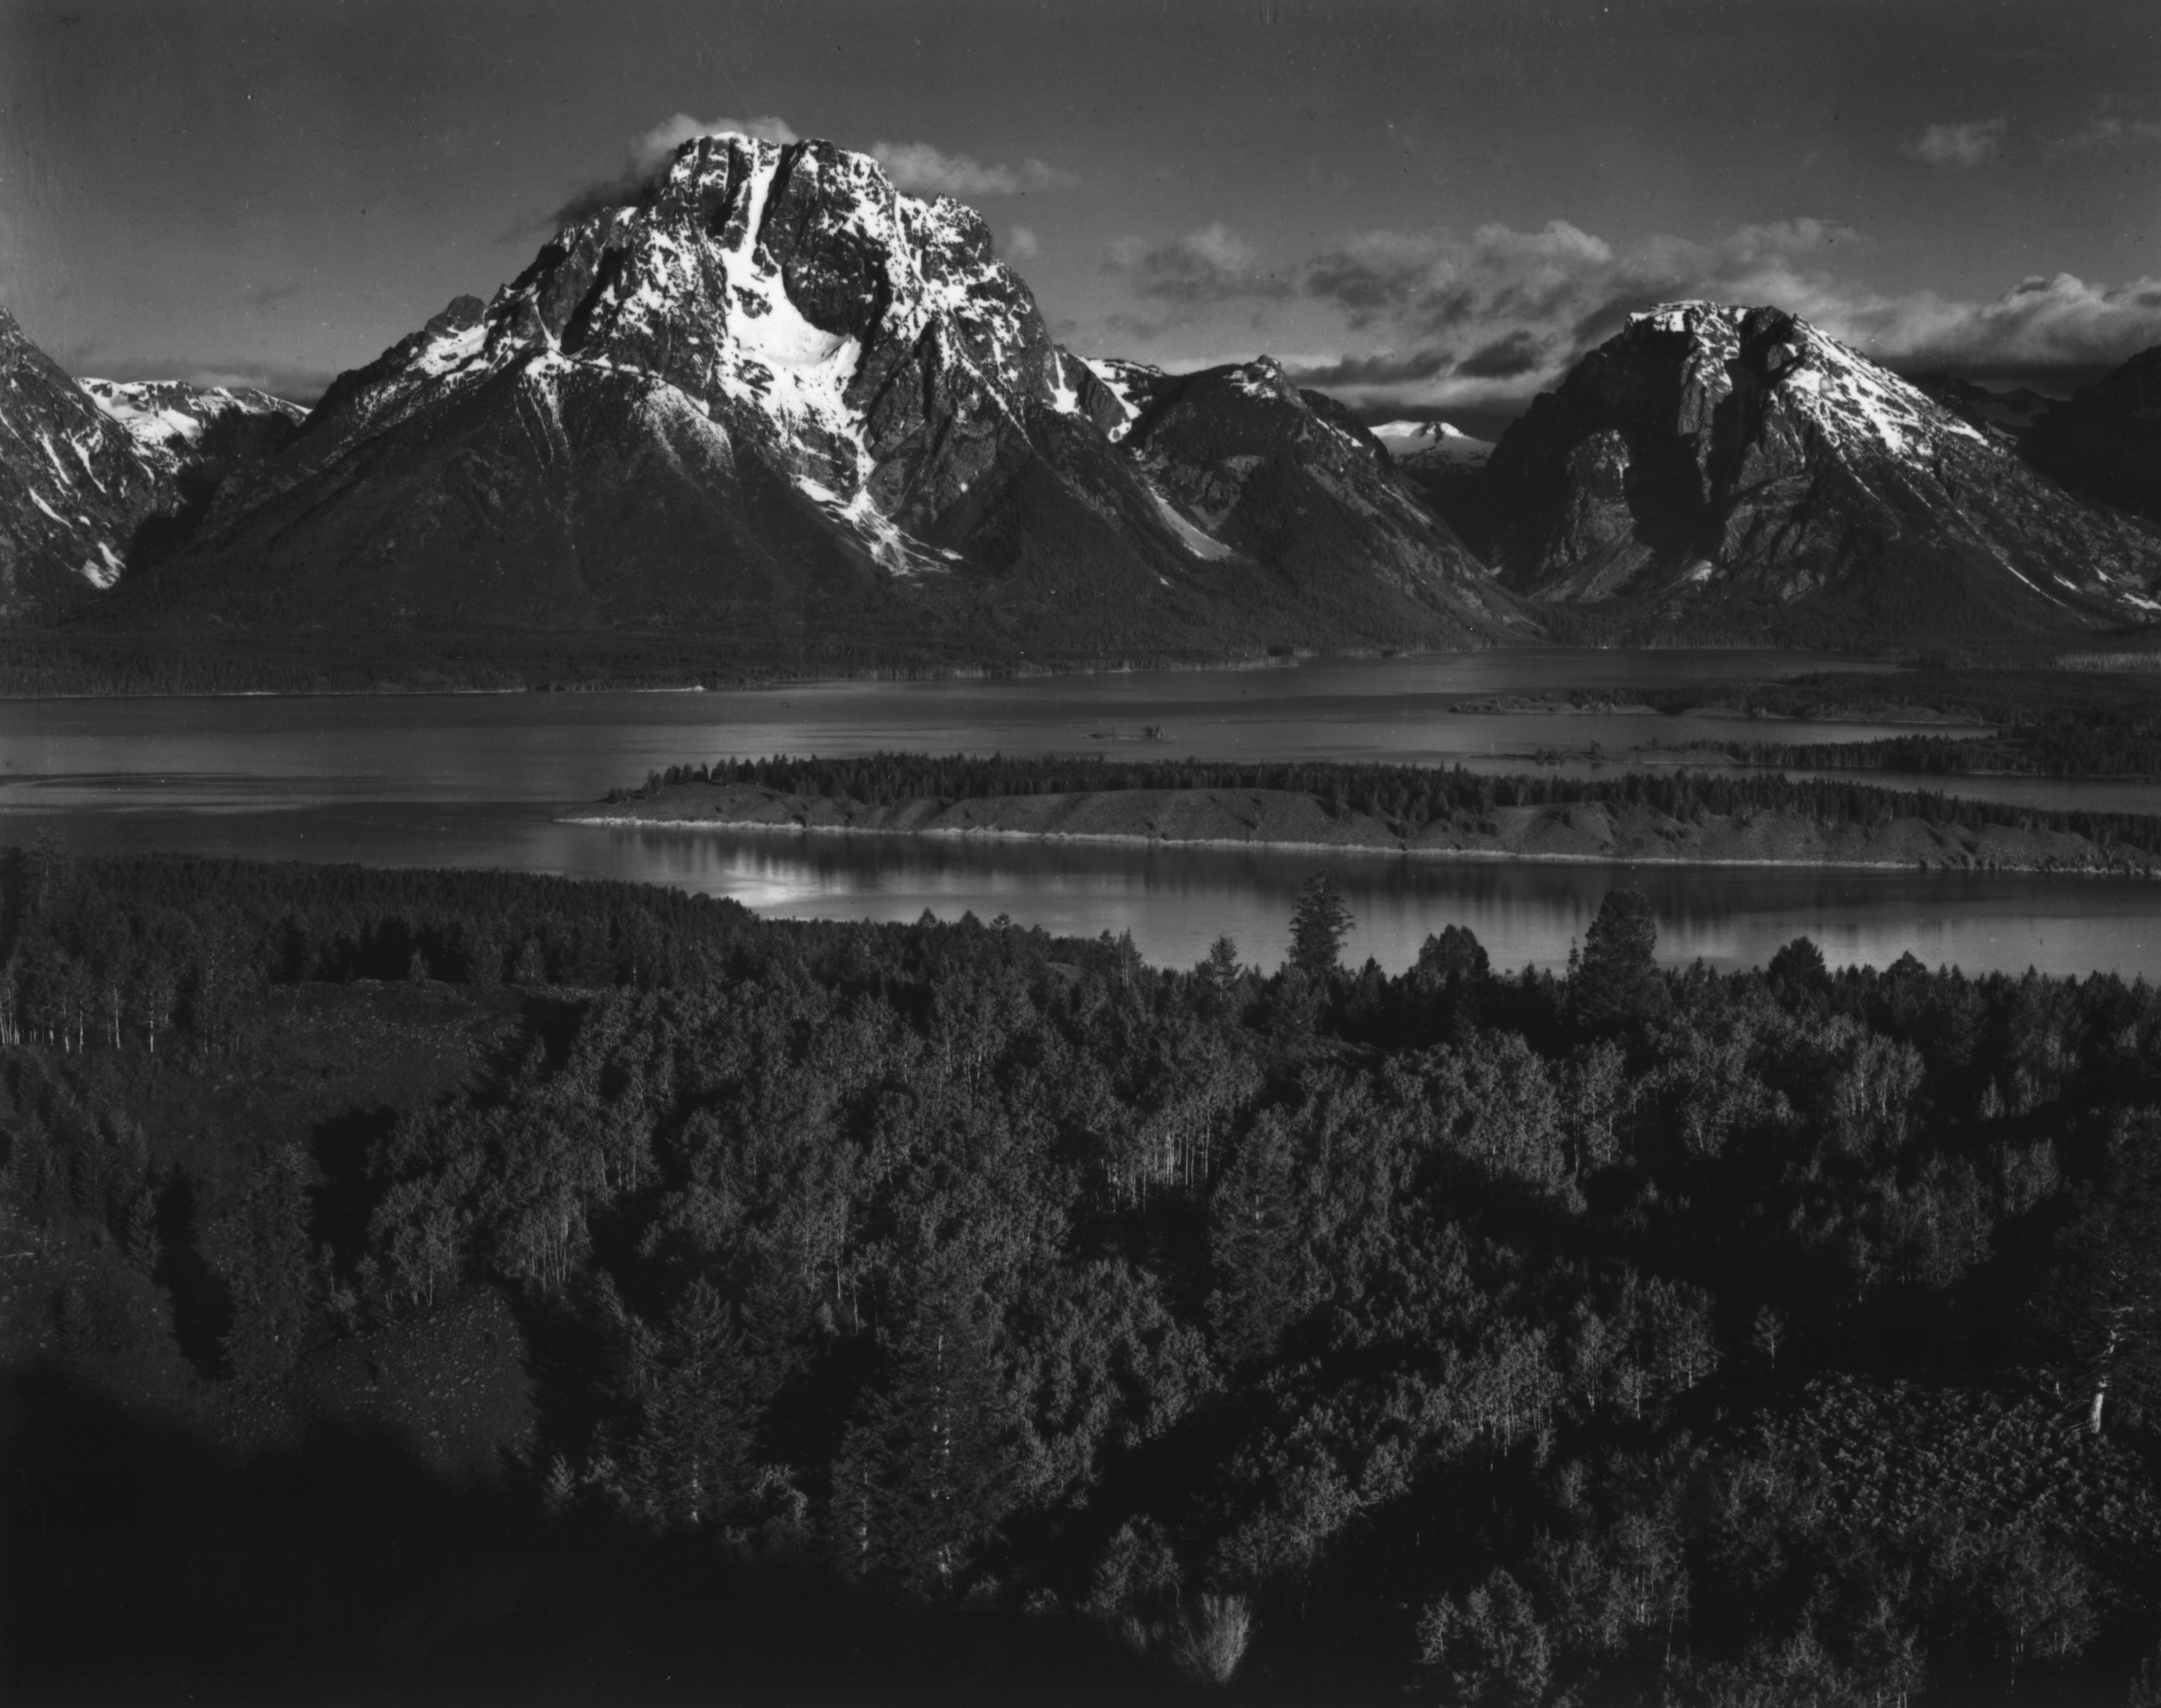 Ansel adams pictures download